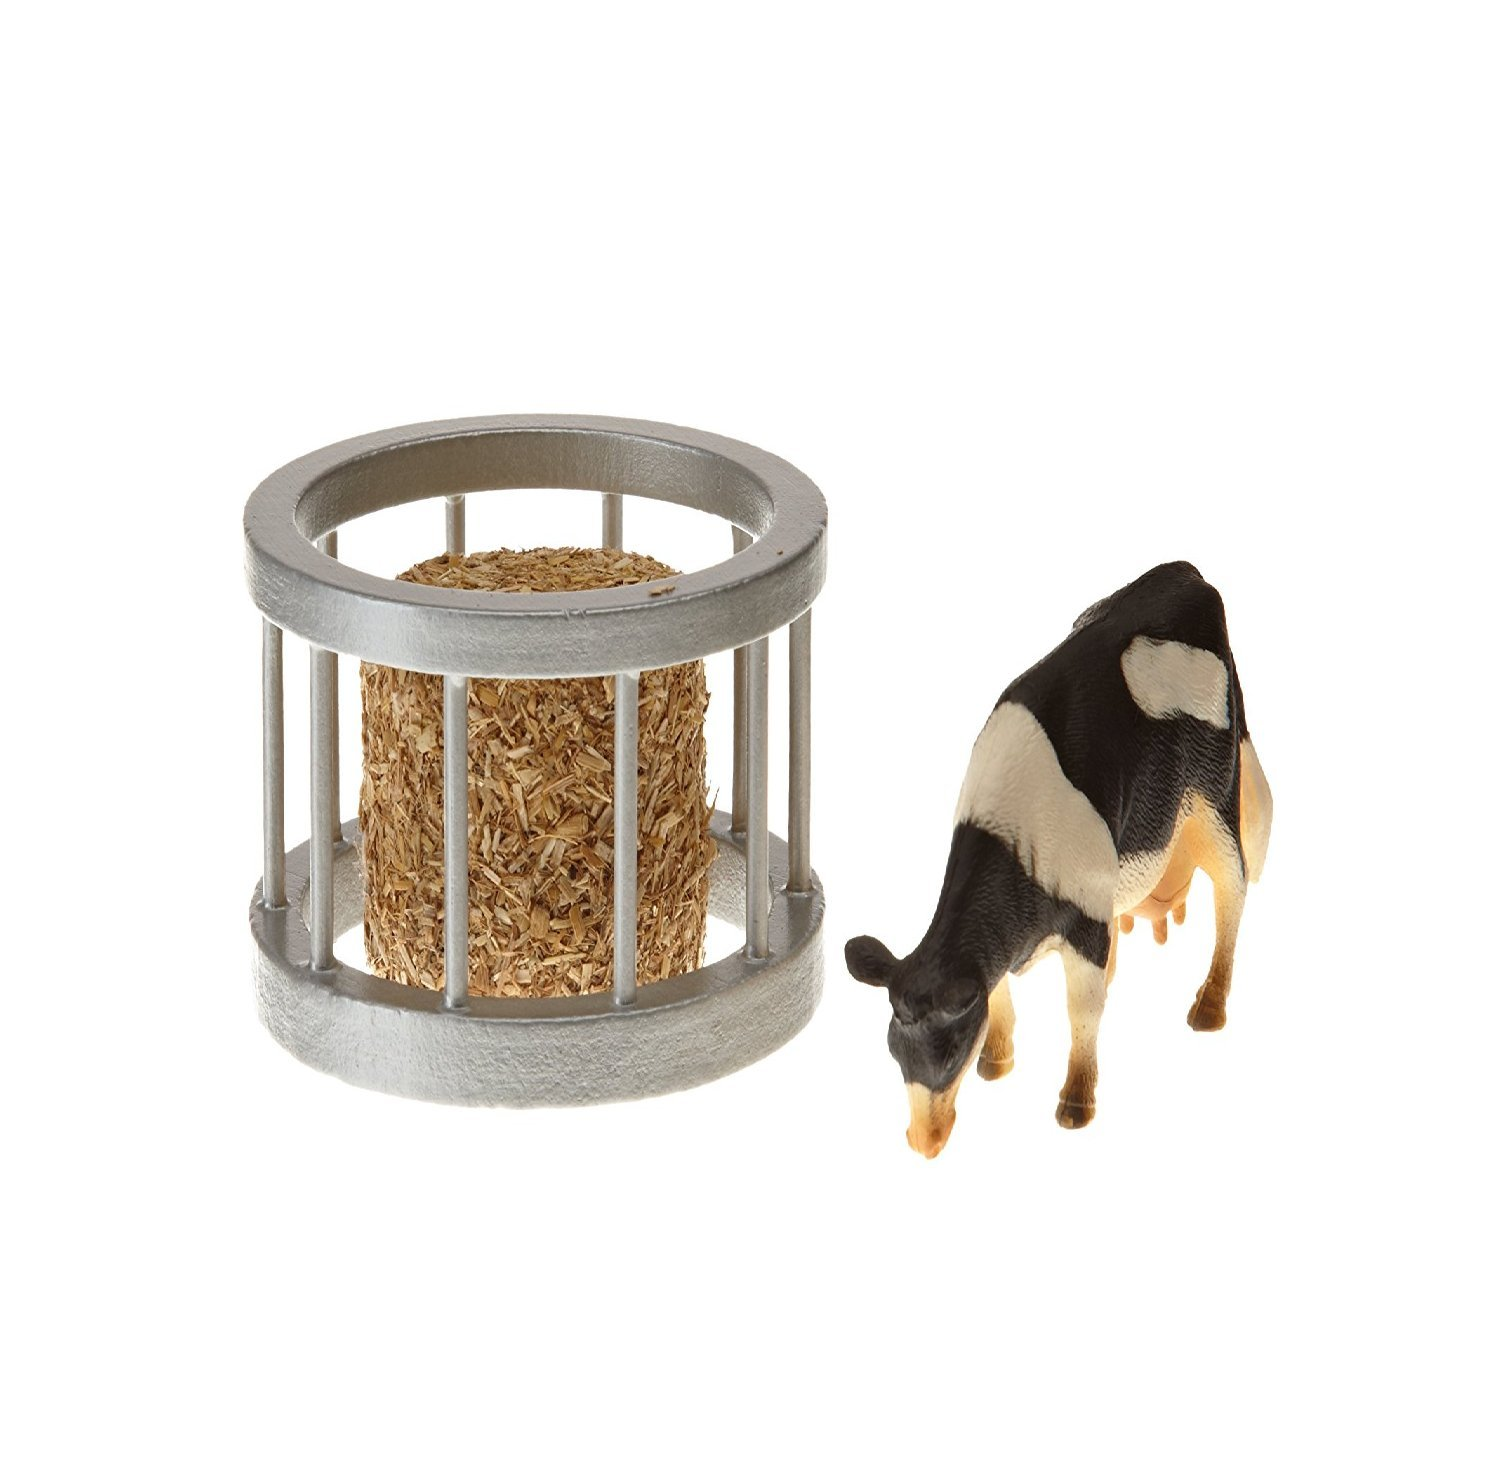 1:32 Kids Globe Farm Feeder Ring With Round Bale  Cow by Van Manen